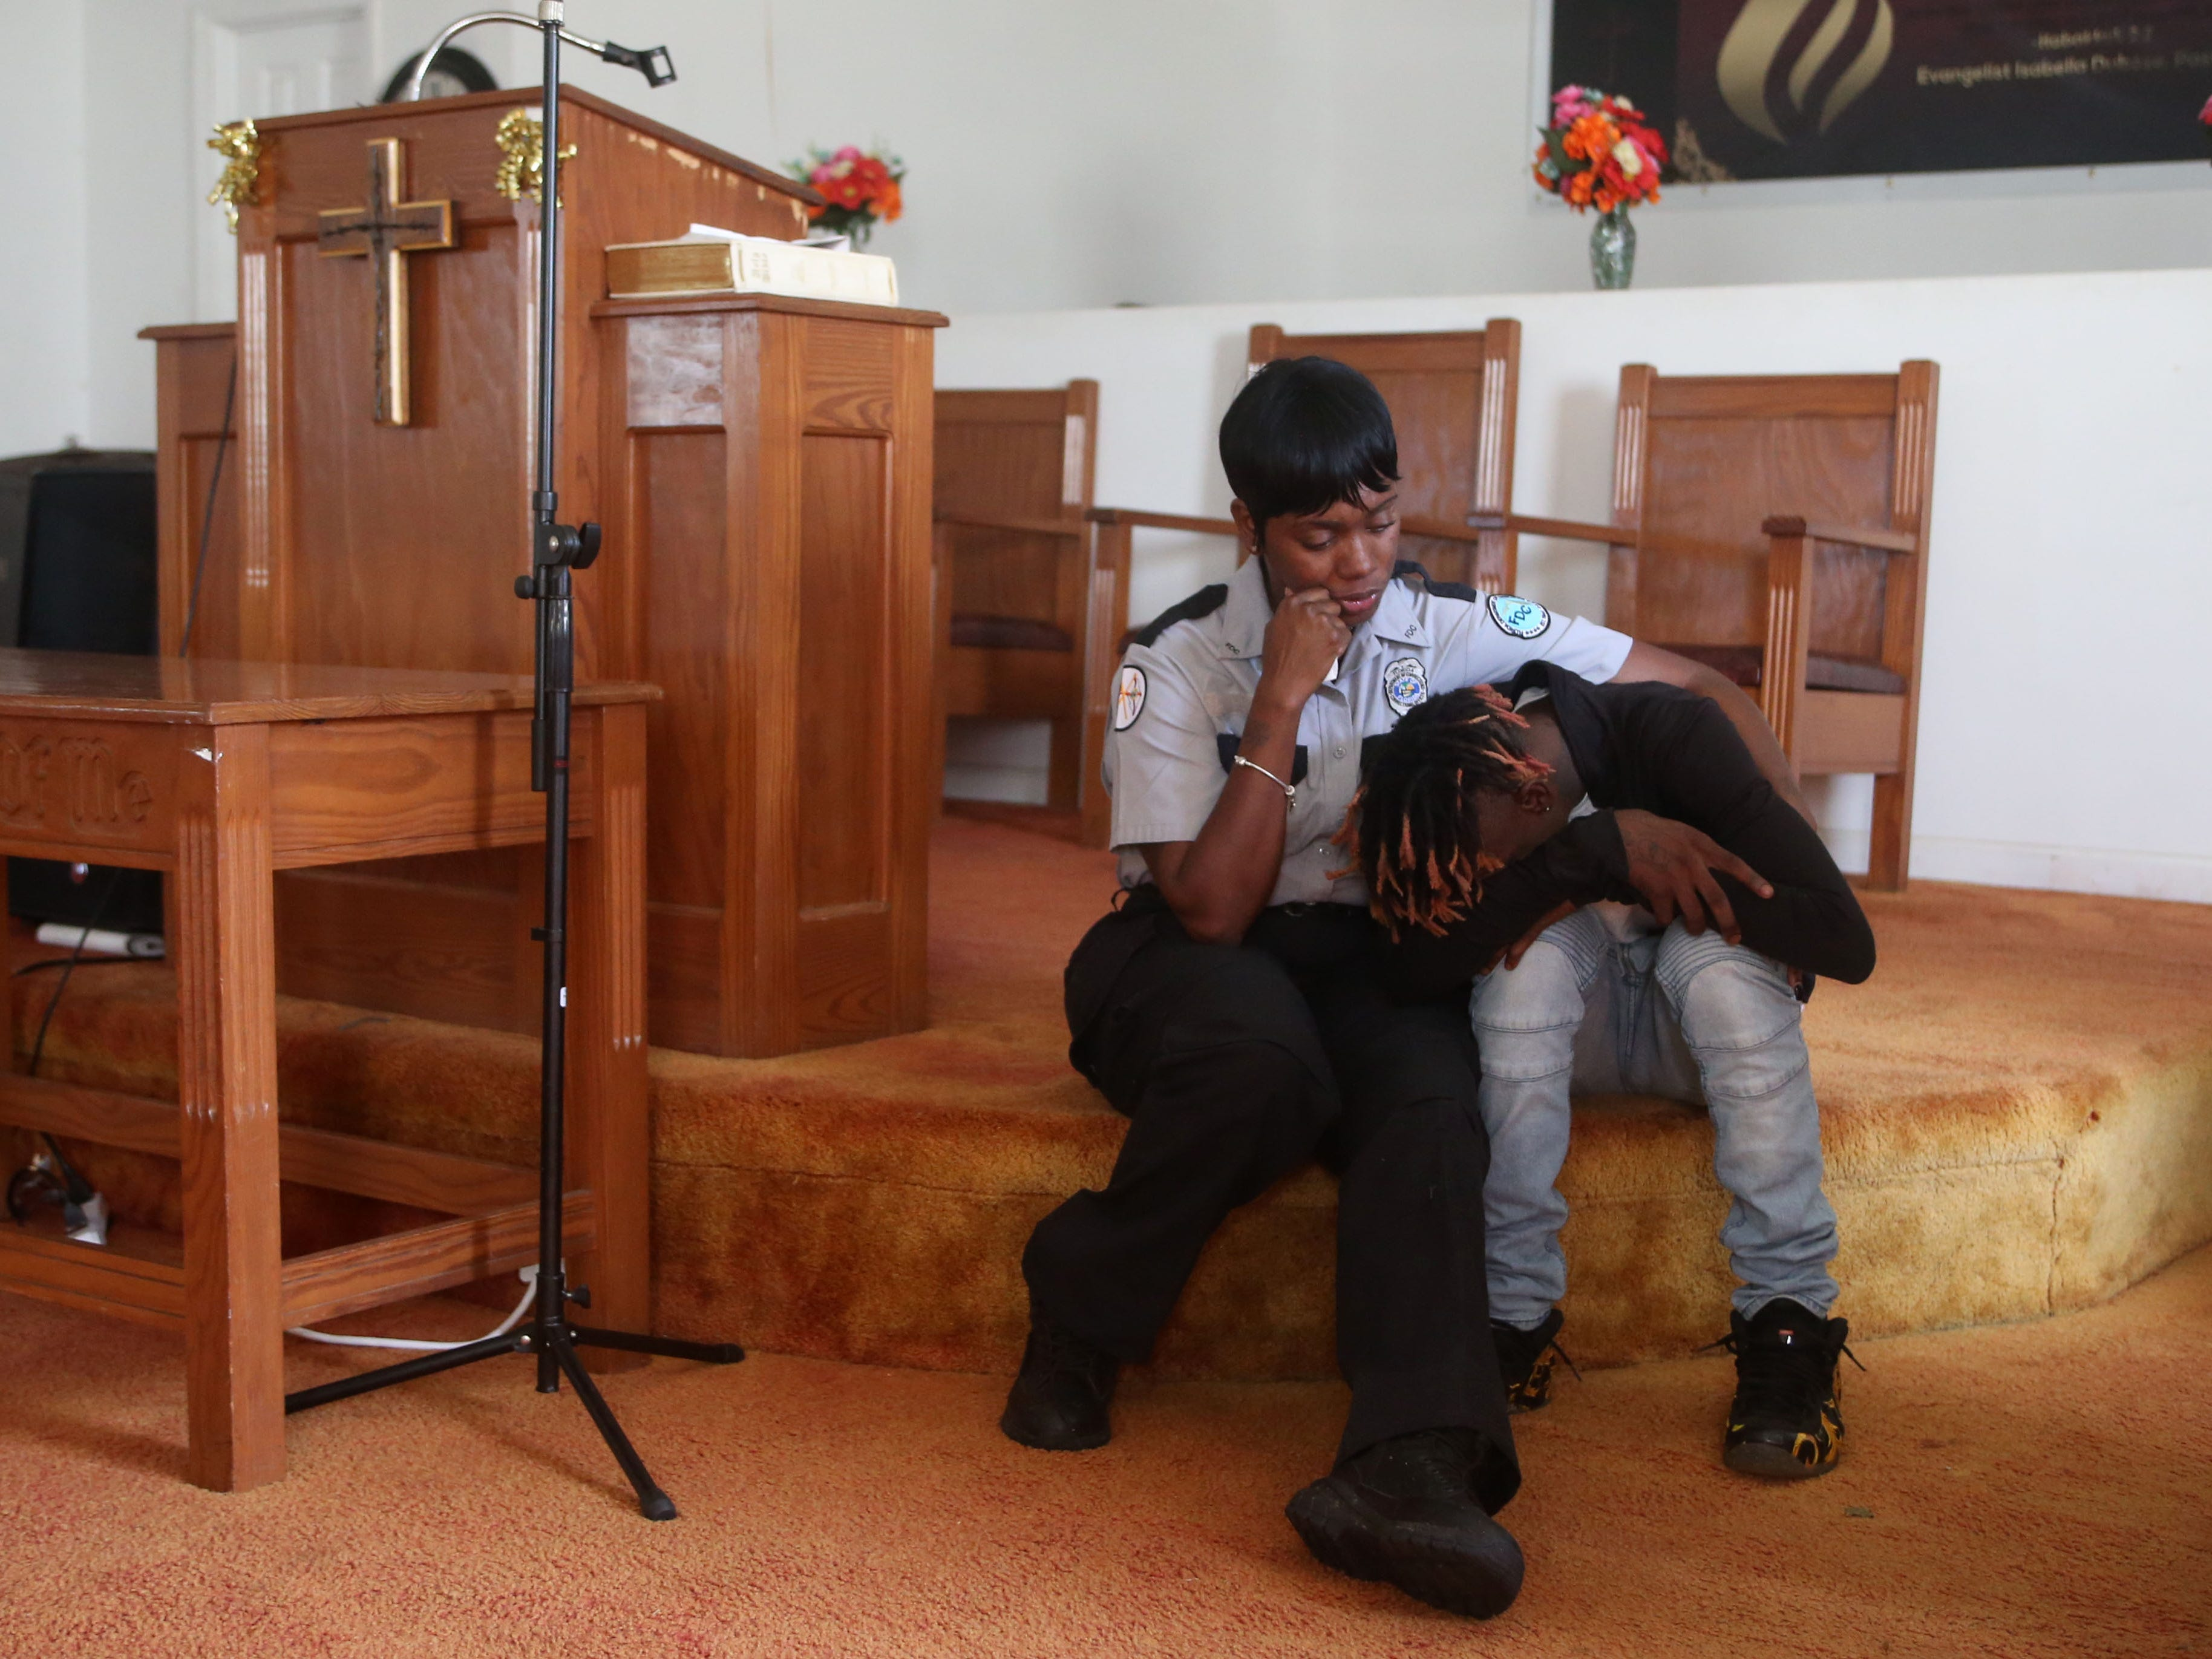 A church member tries to console Tyran Grant, 21, son of Demashell Bass, a woman who could not receive medical attention and died during the hurricane at the footsteps of the alter at the Dream, Vision, and Destiny (DVD) Ministry in Gretna, Fla., on Sunday Oct. 14, 2018, after Hurricane Michael hits the Florida panhandle.